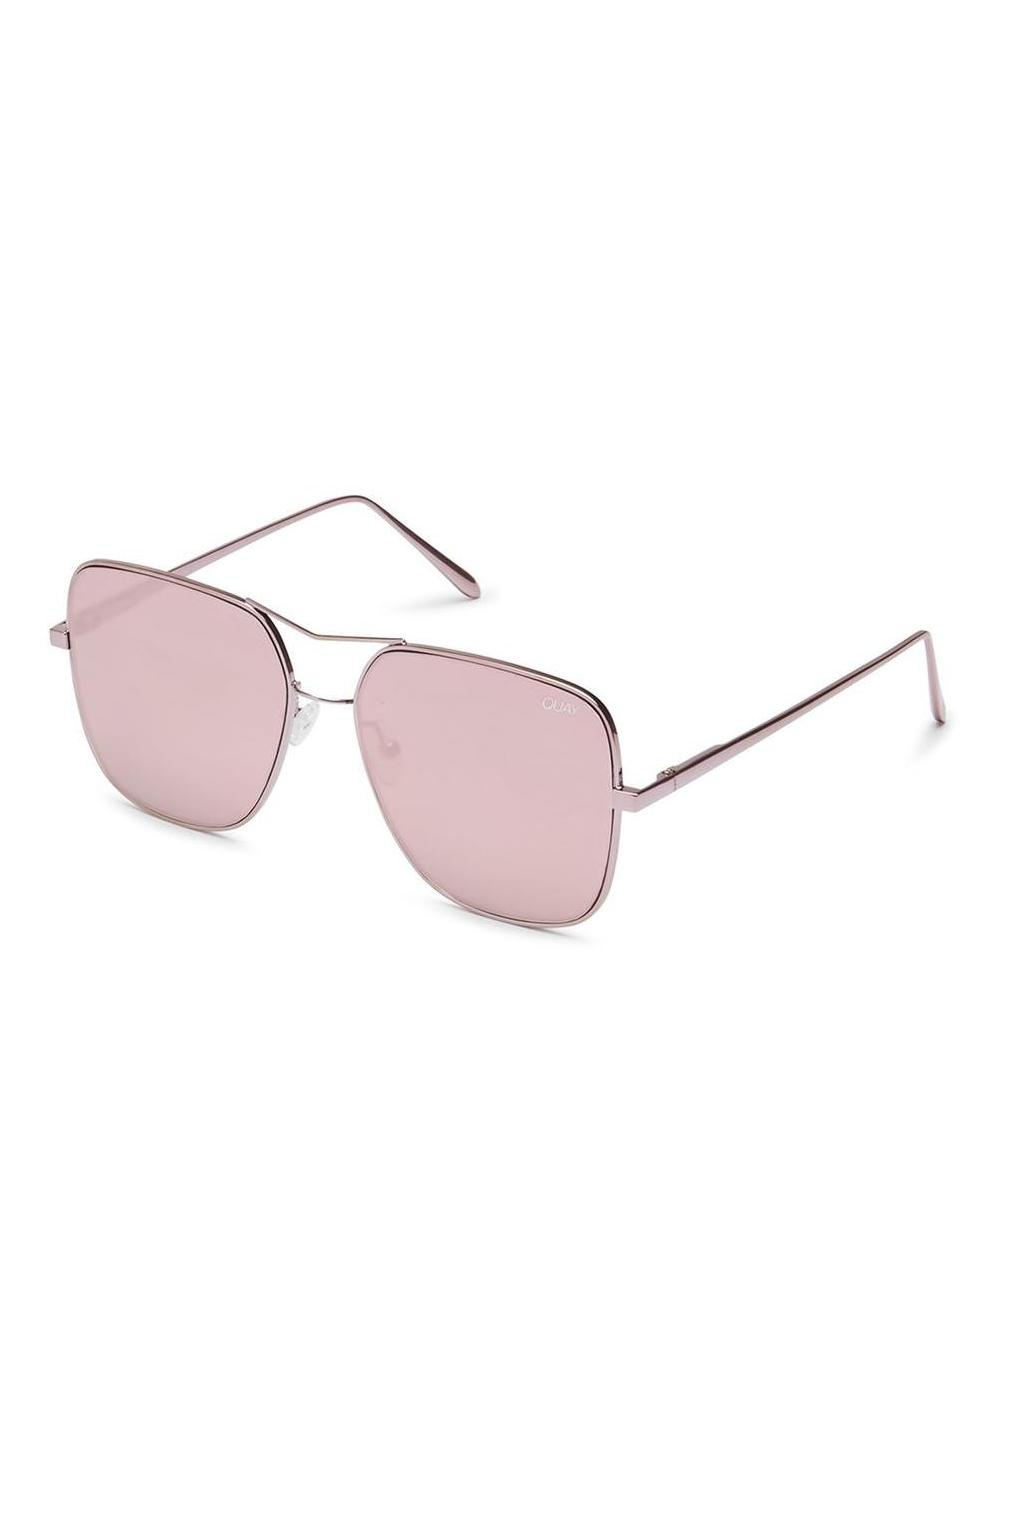 Stop and Stare Sunglasses by Quay Australia, top shop, 51,40